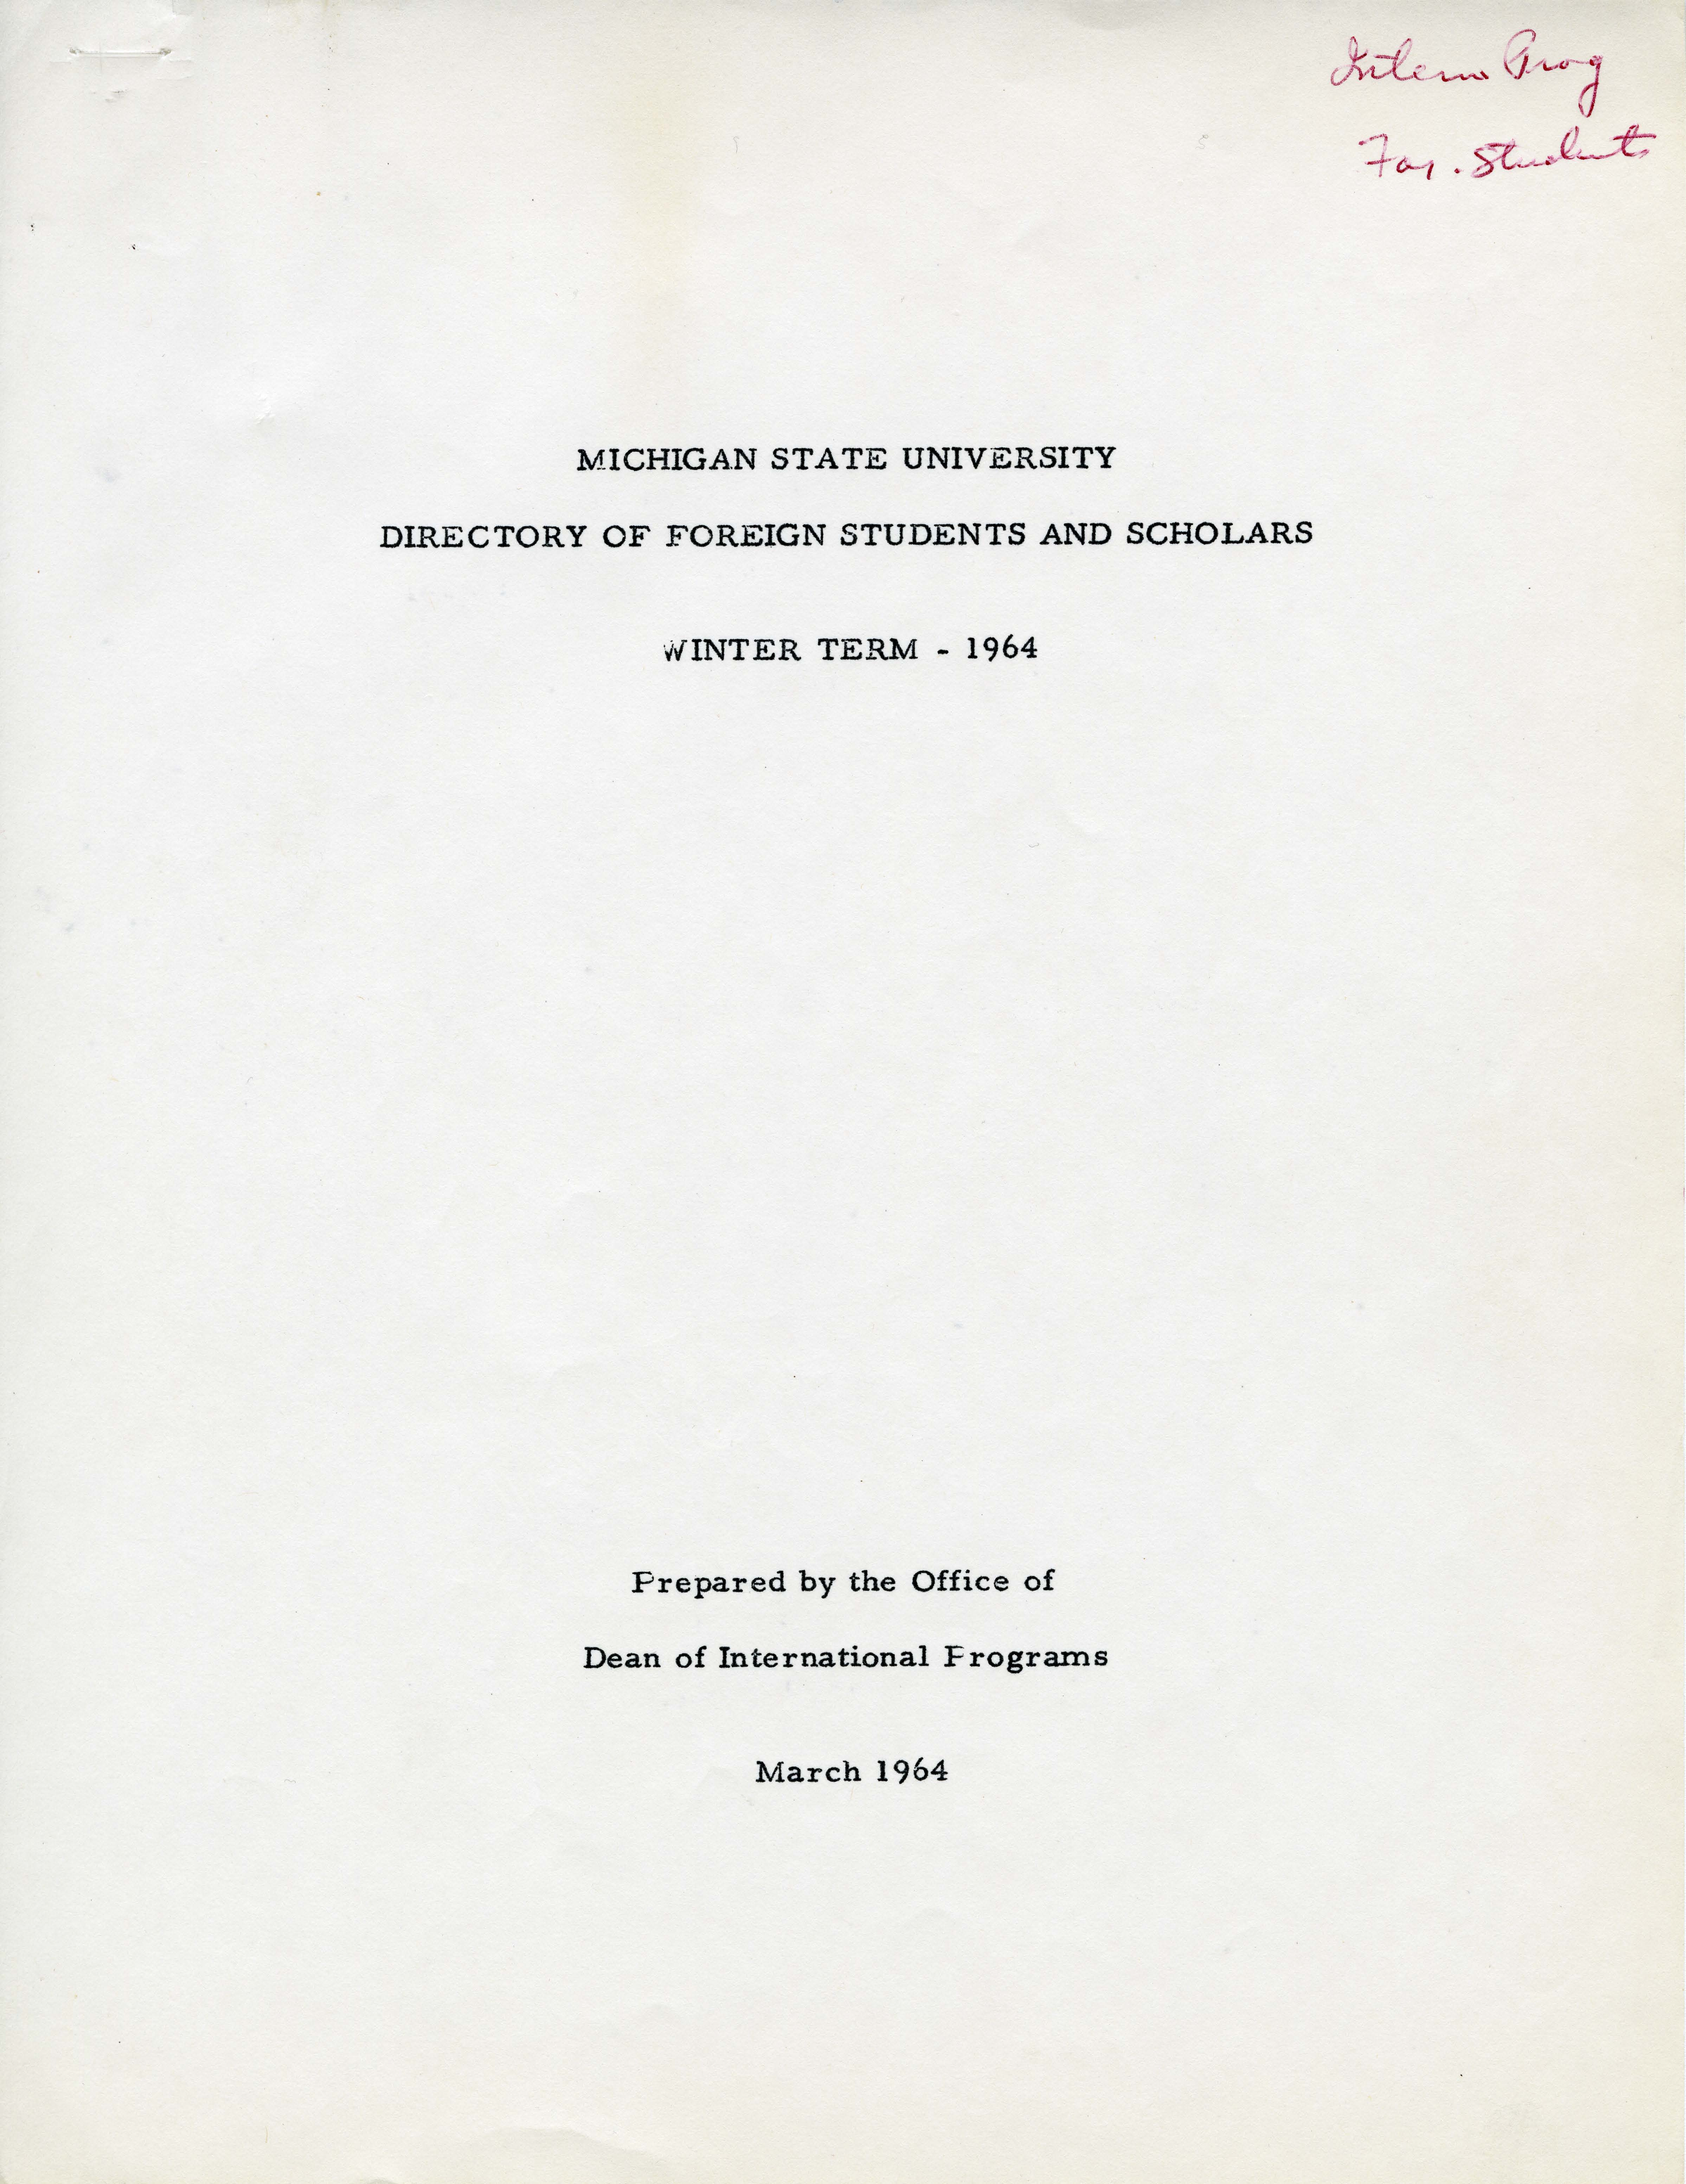 1964 (Winter) International Students and Scholars Directory